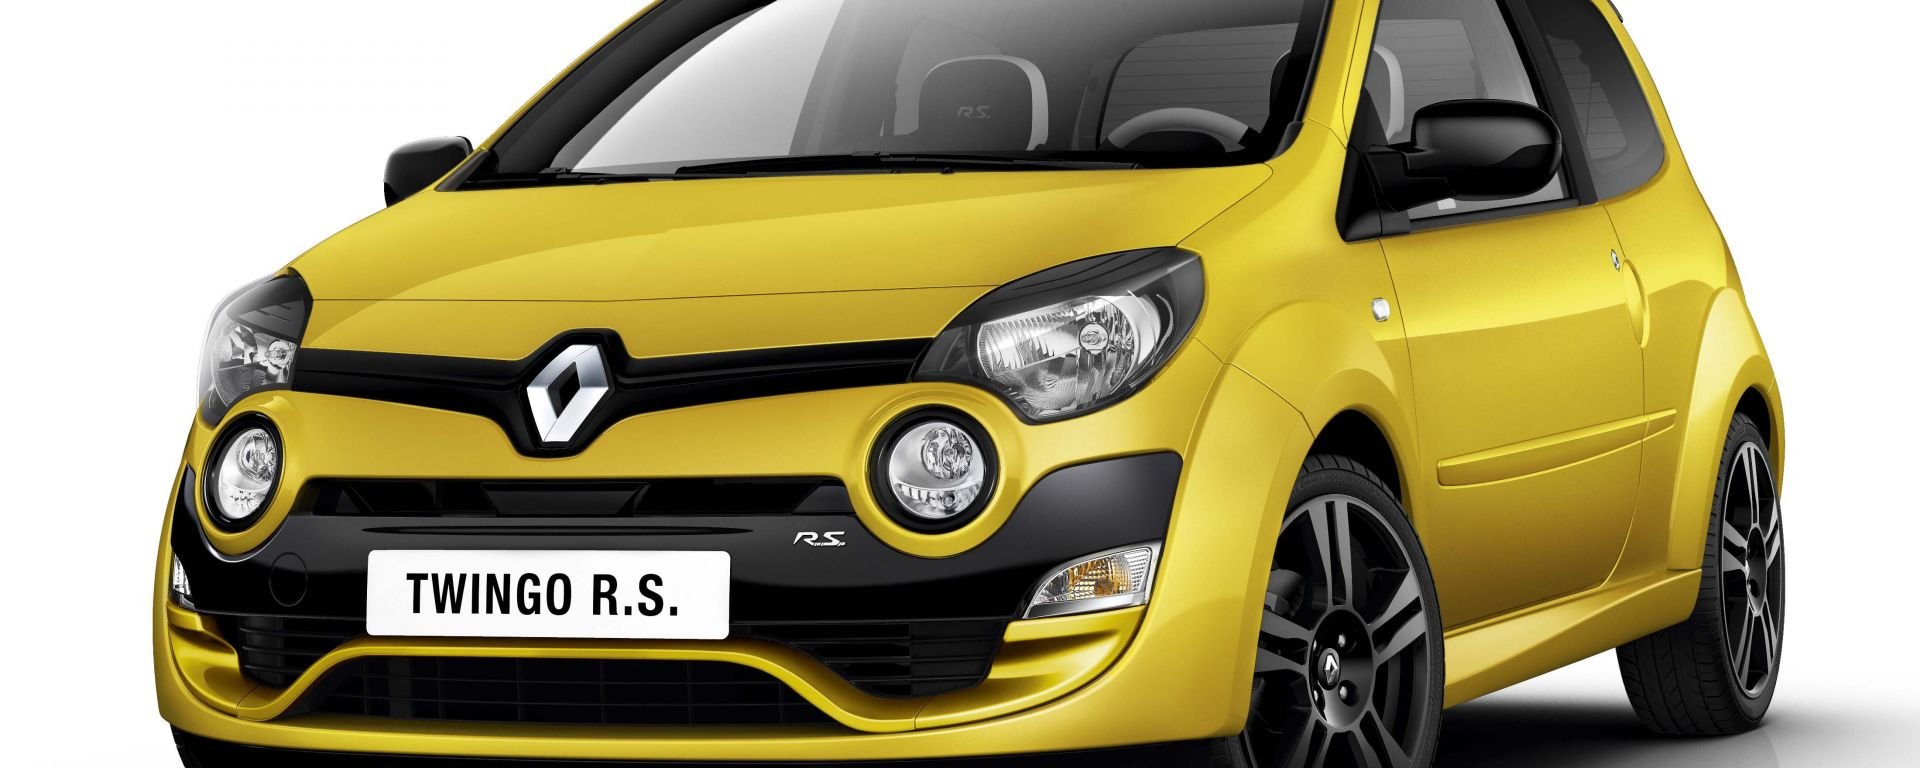 prossimamente renault twingo rs 2012 motorbox. Black Bedroom Furniture Sets. Home Design Ideas